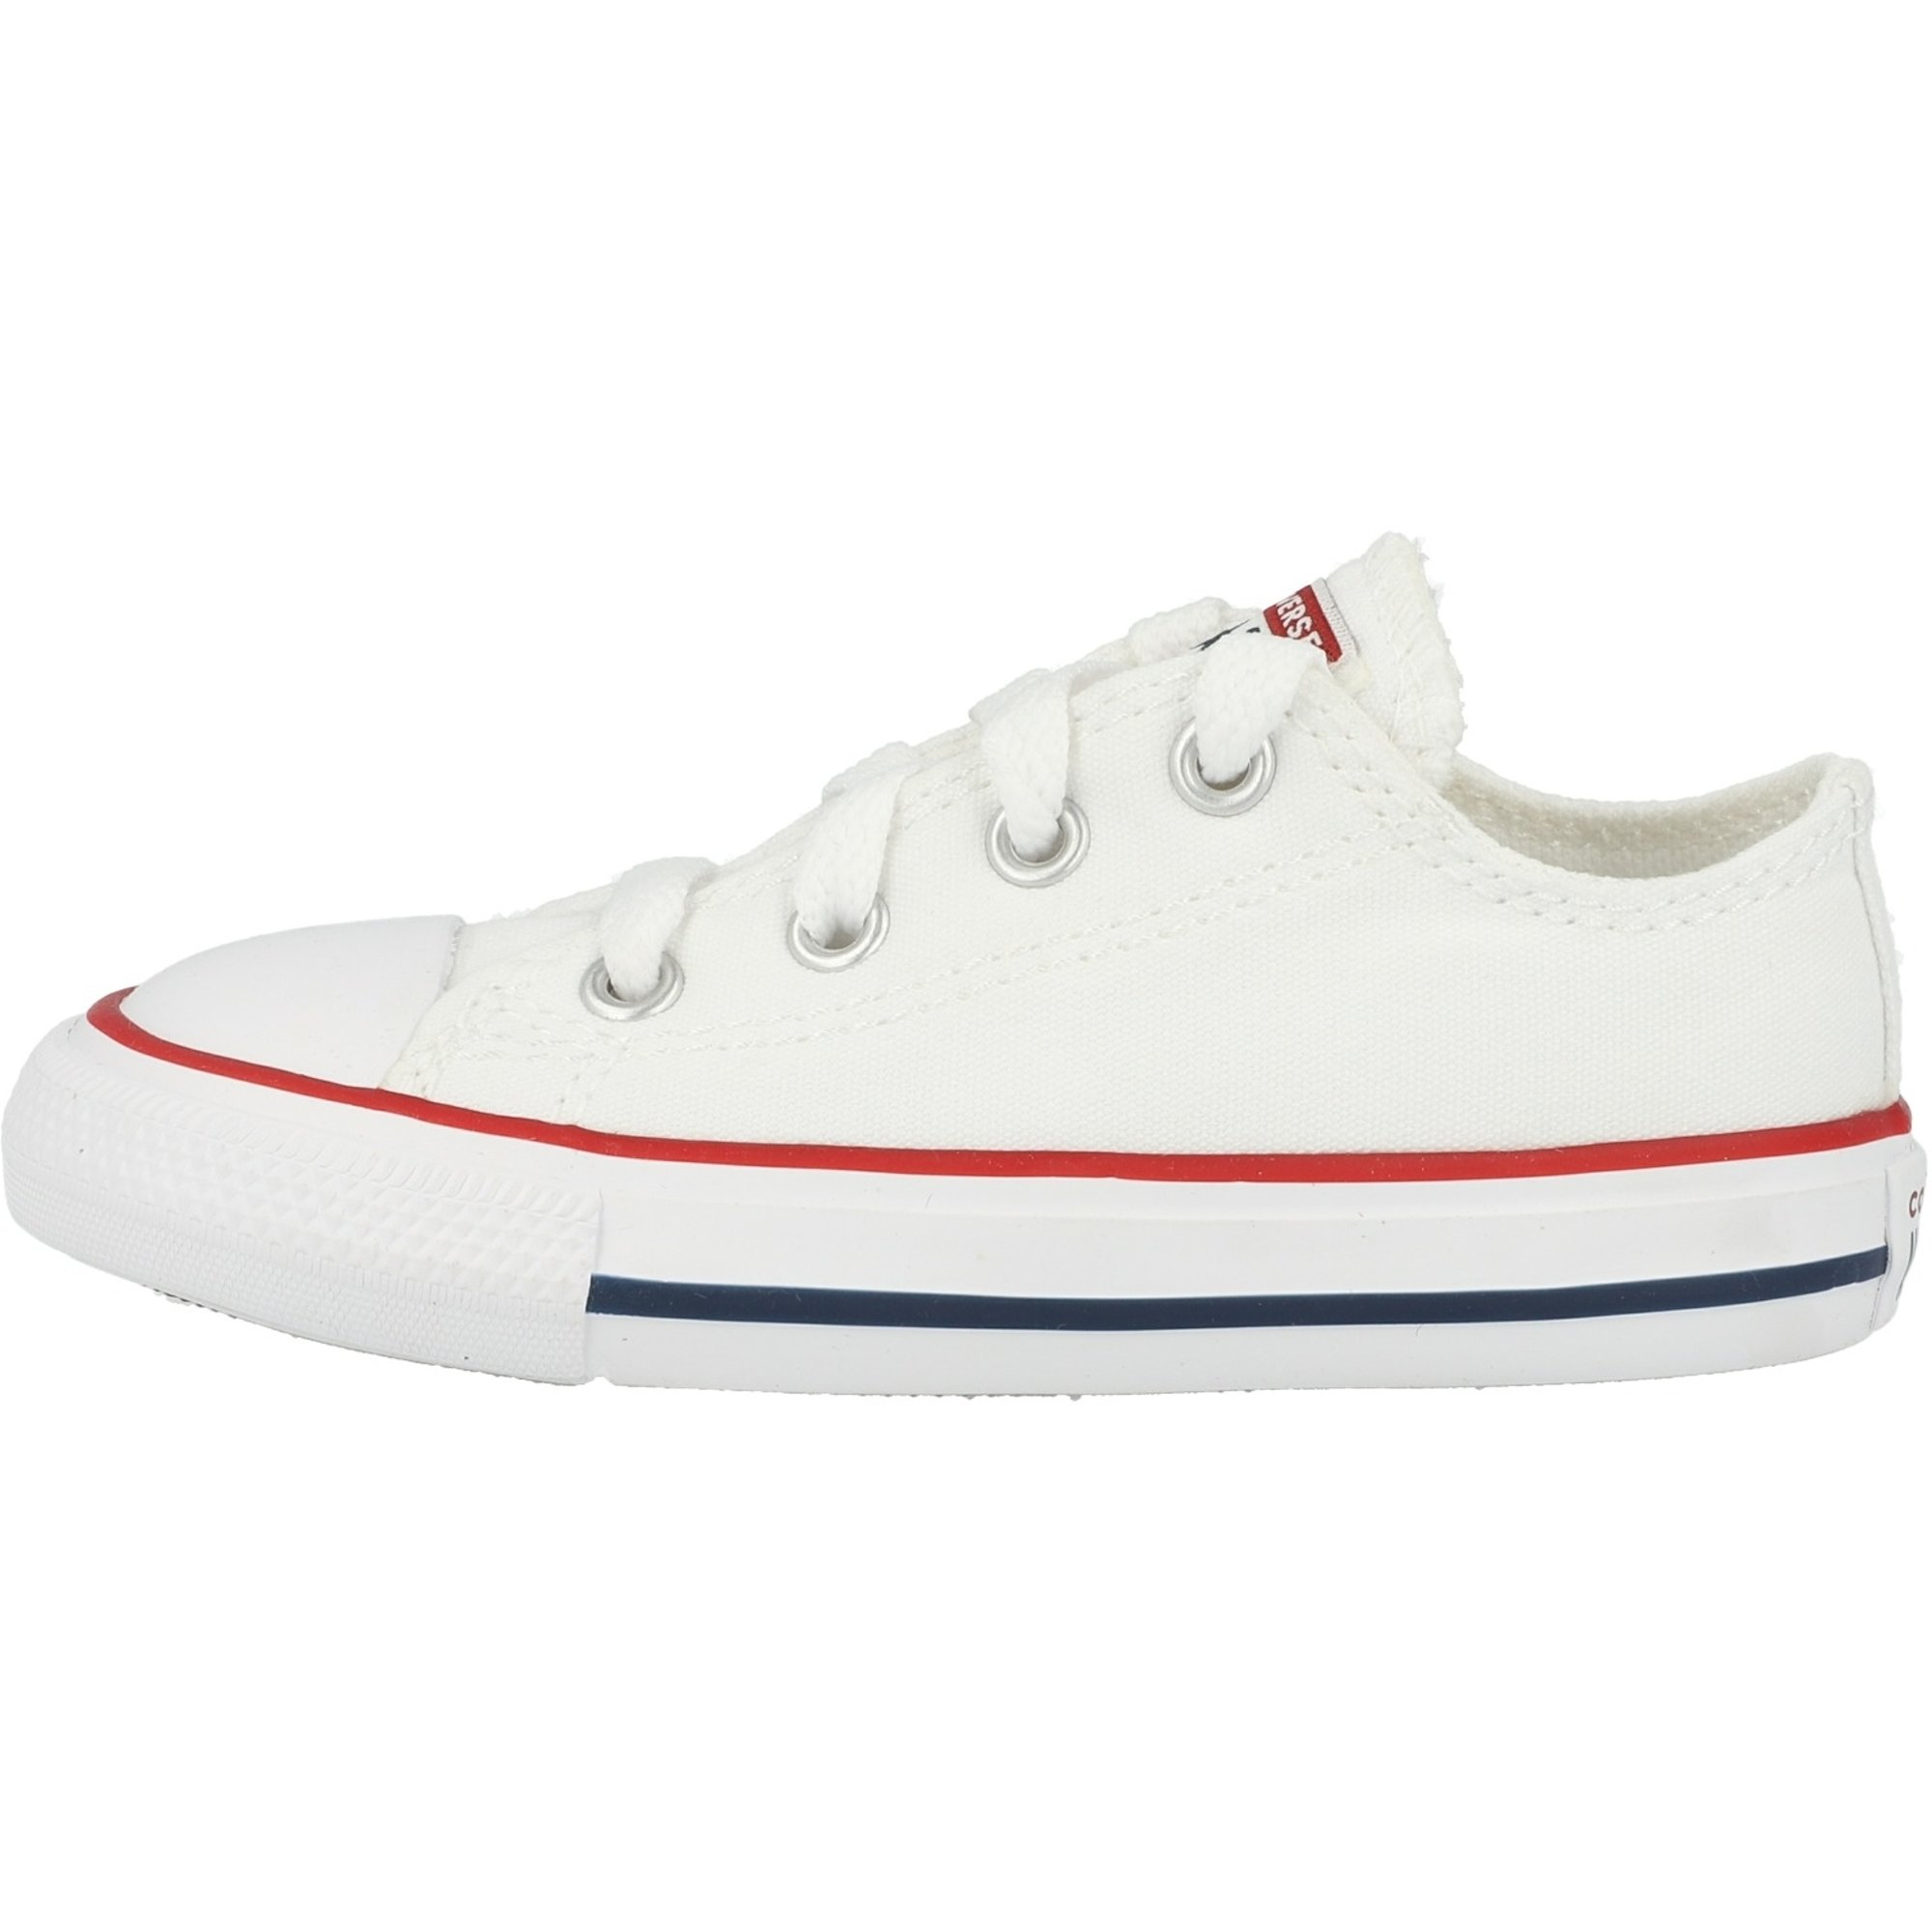 Converse Chuck Taylor All Star Ox Optical White Textile Infant